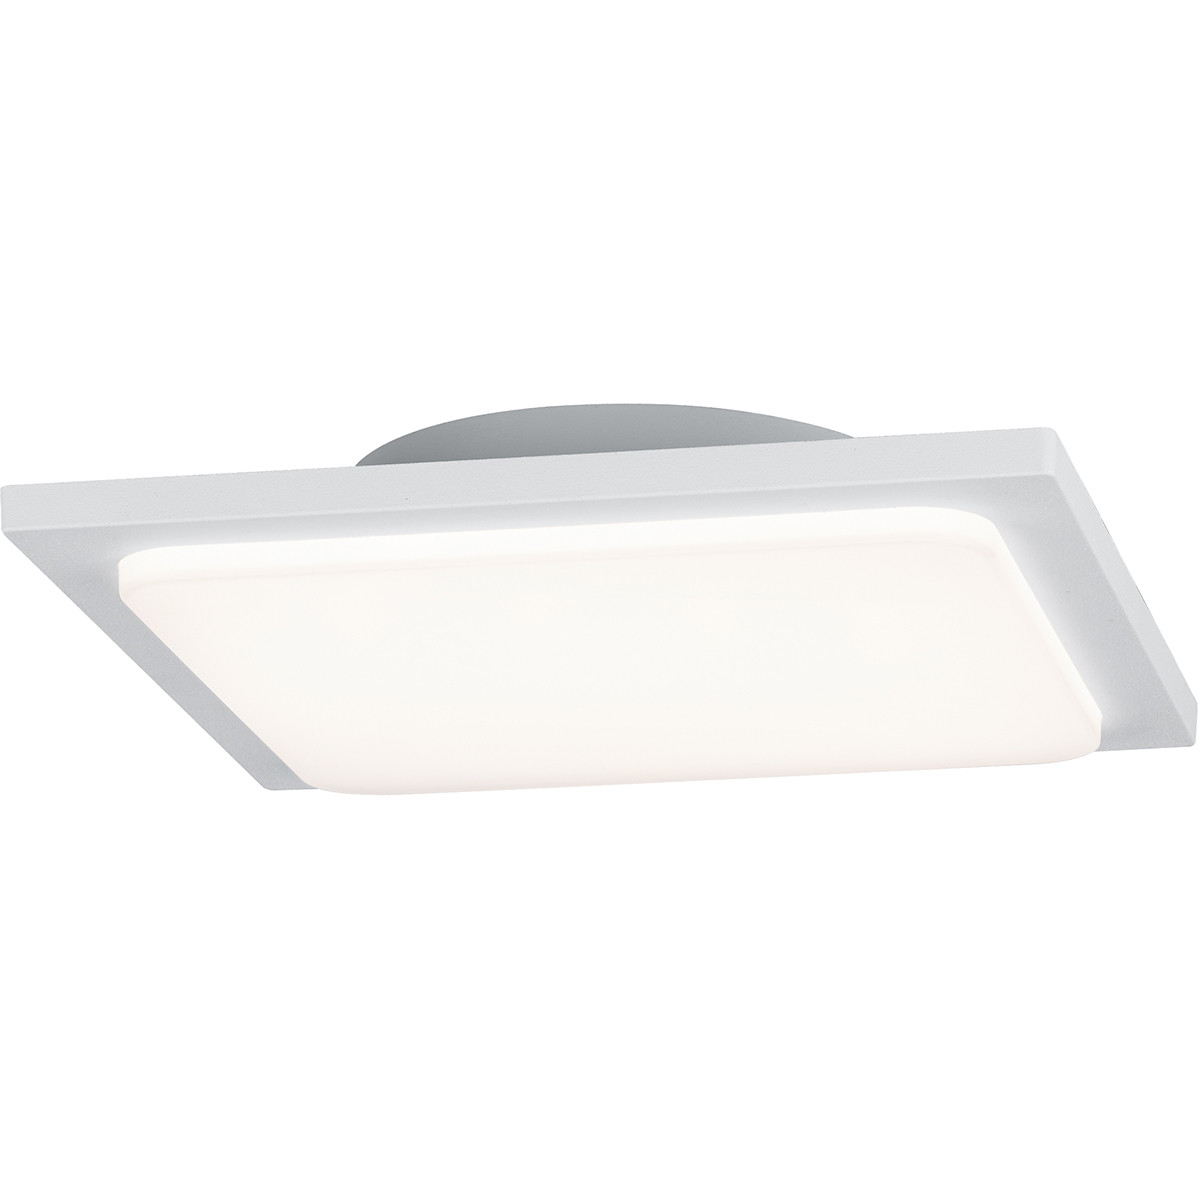 LED Plafondlamp - Trion Tovery - Opbouw Vierkant 18W - Waterdicht IP54 - Warm Wit 3000K - Mat Wit -